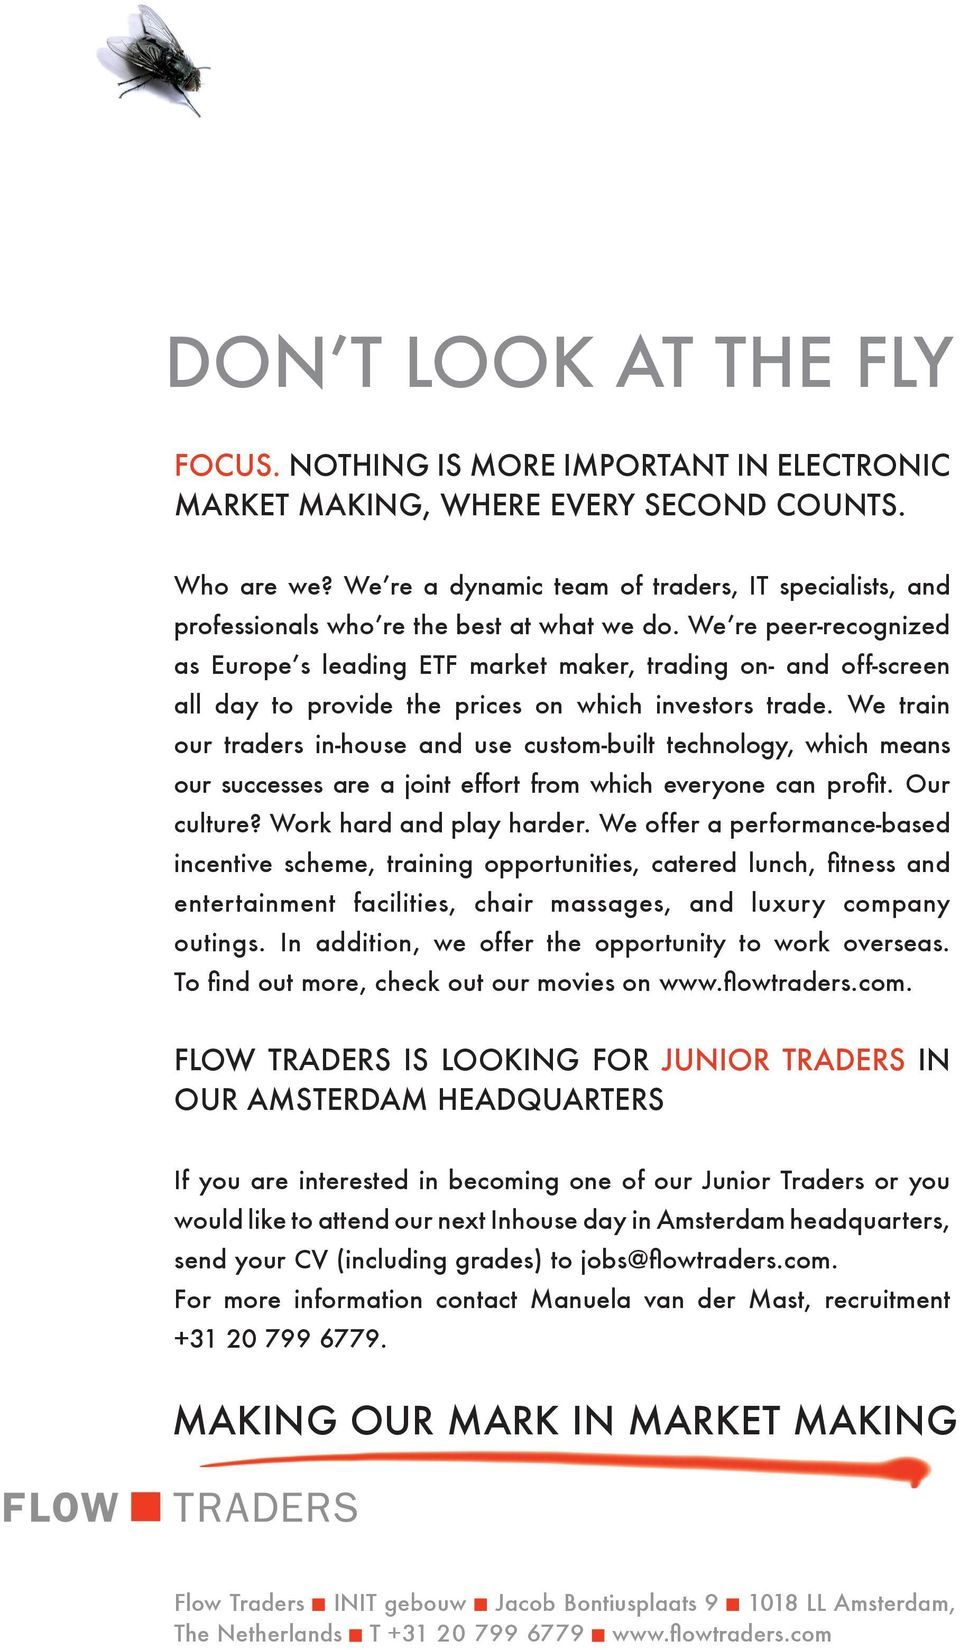 We're peer-recognized as Europe's leading ETF market maker, trading on- and off-screen all day to provide the prices on which investors trade.